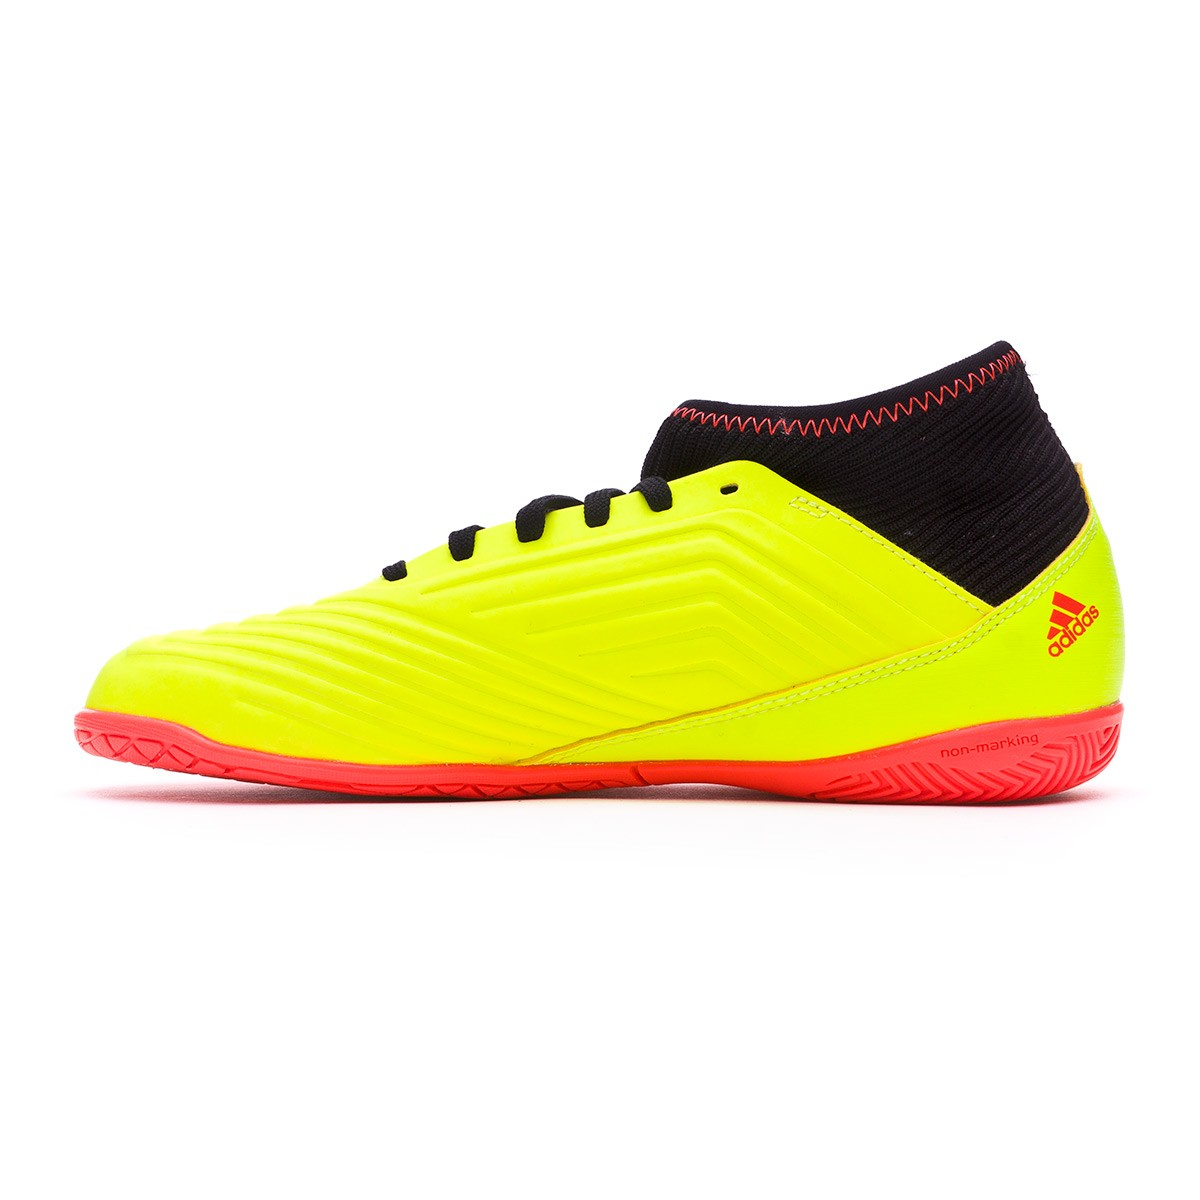 77bec646e00 Futsal Boot adidas Kids Predator Tango 18.3 IN Solar yellow-Black-Solar red  - Tienda de fútbol Fútbol Emotion